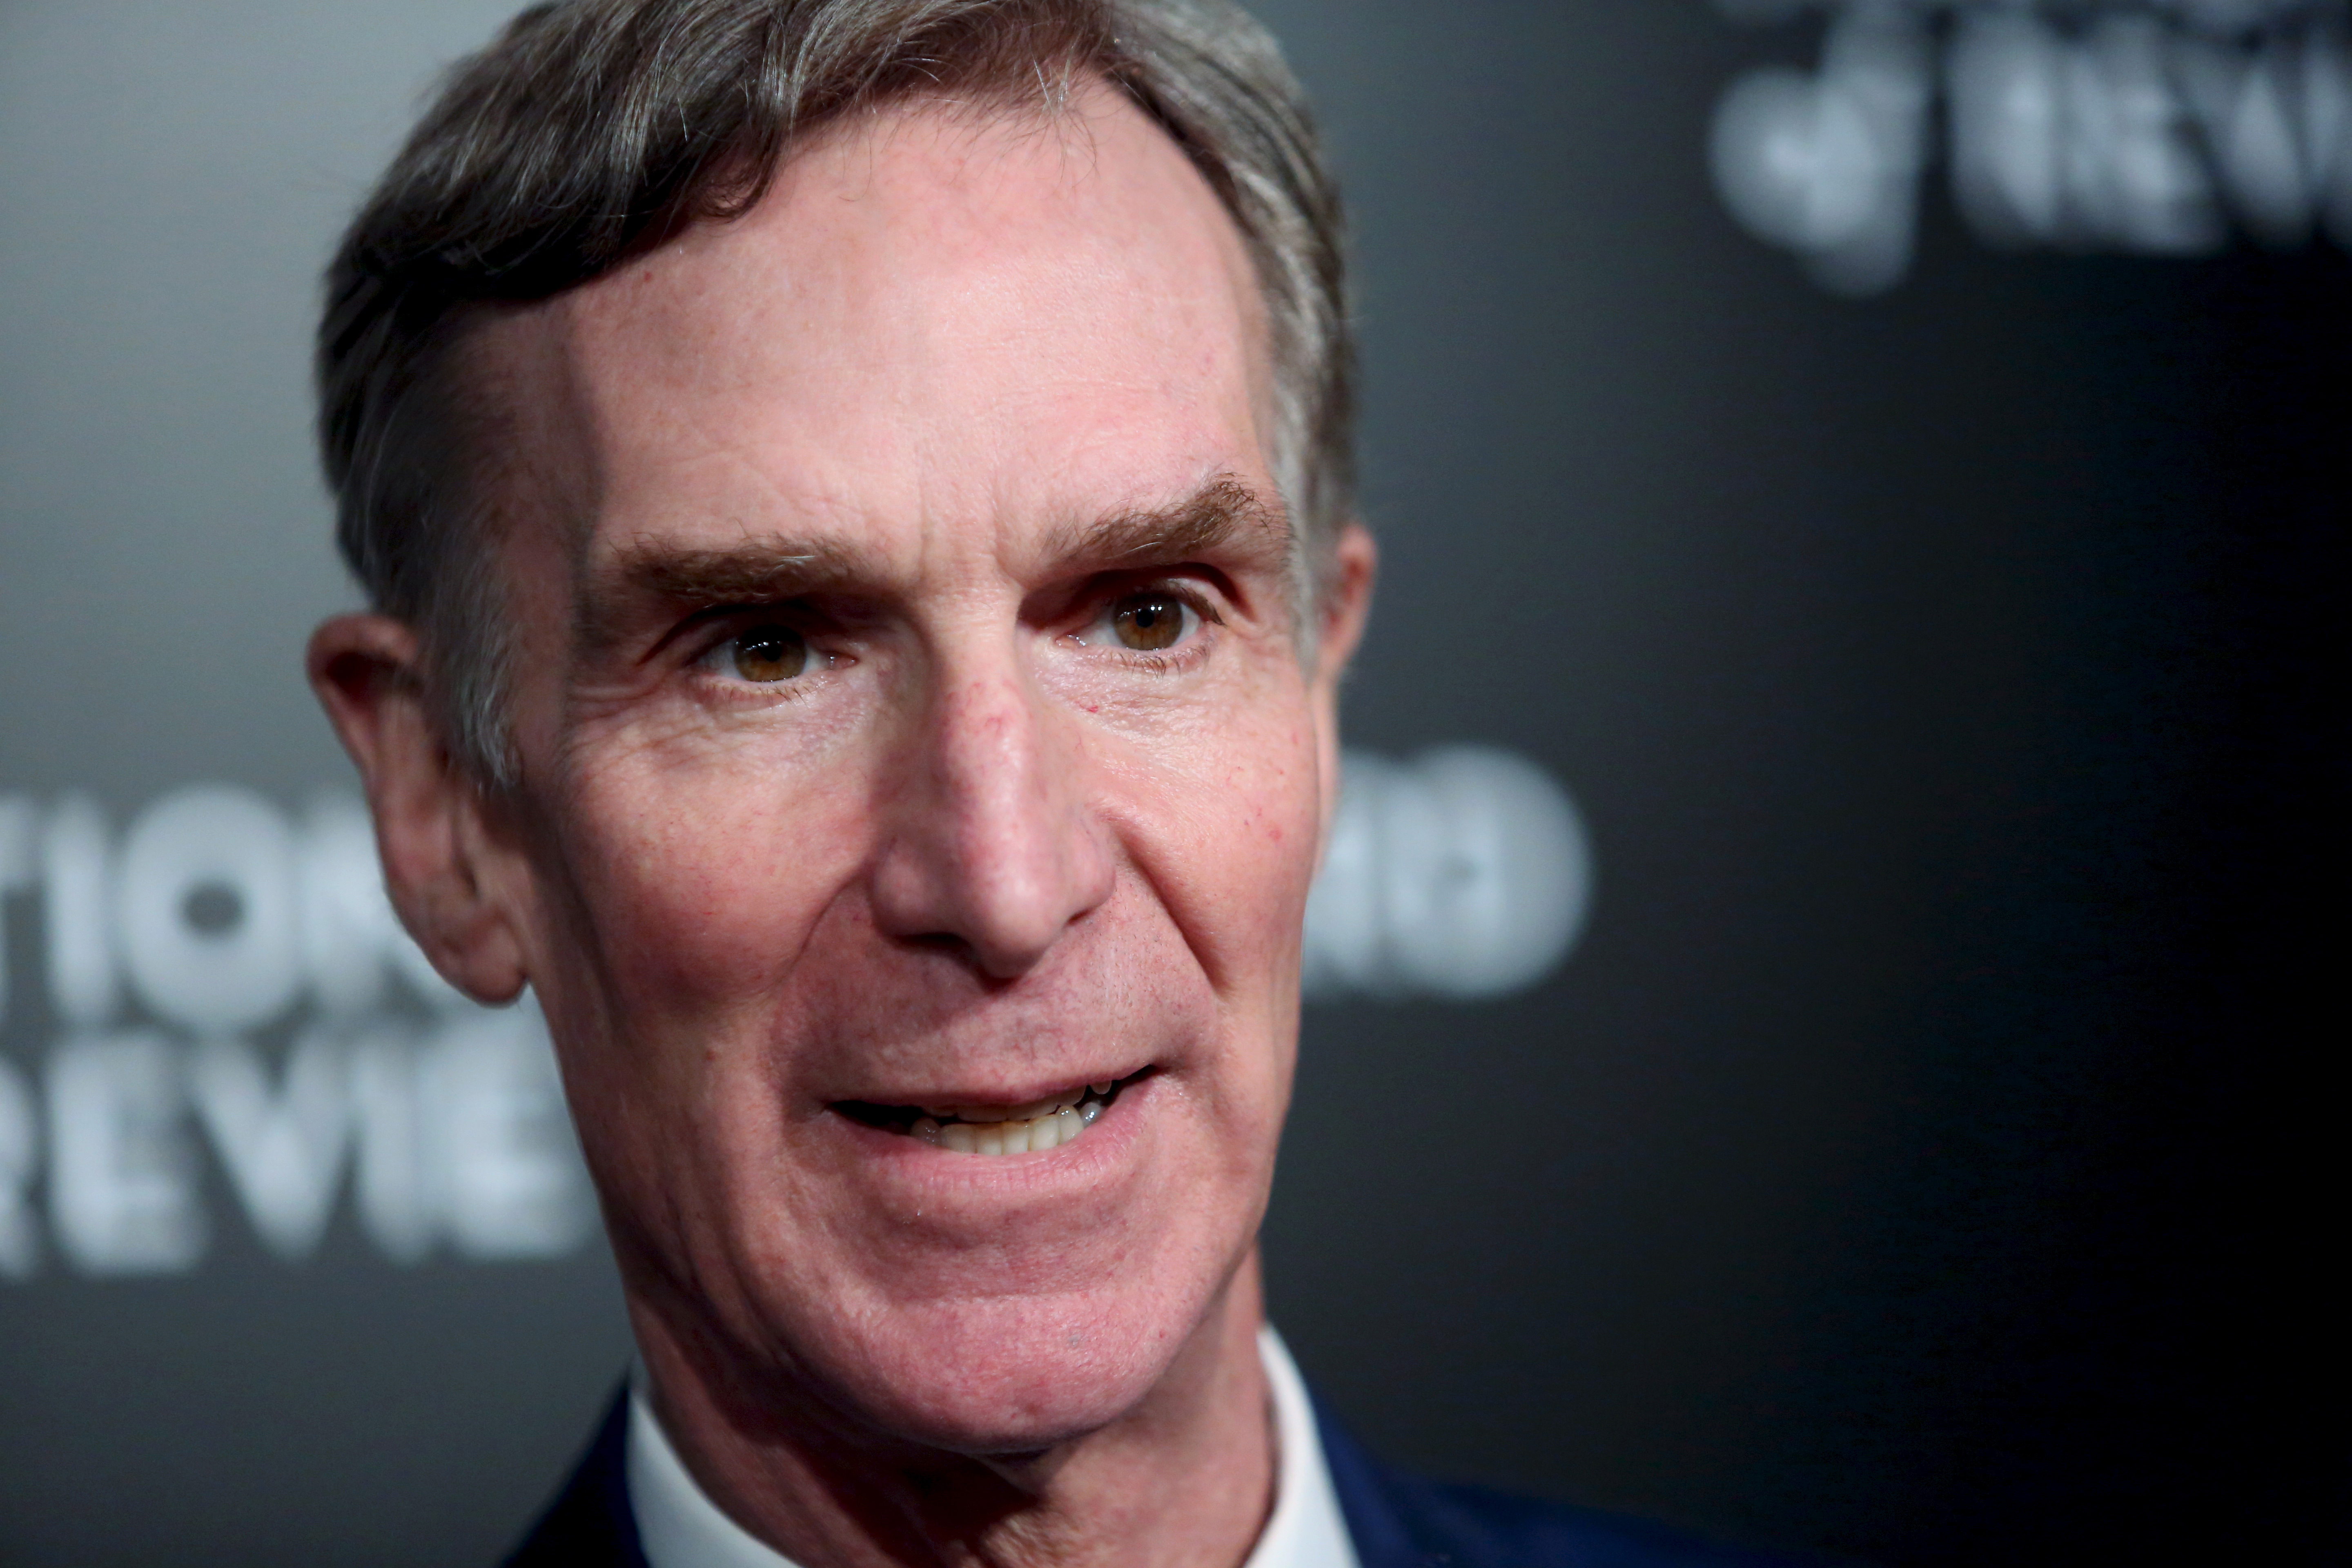 Bill Nye says world needs to respond to climate change like it did with D-Day